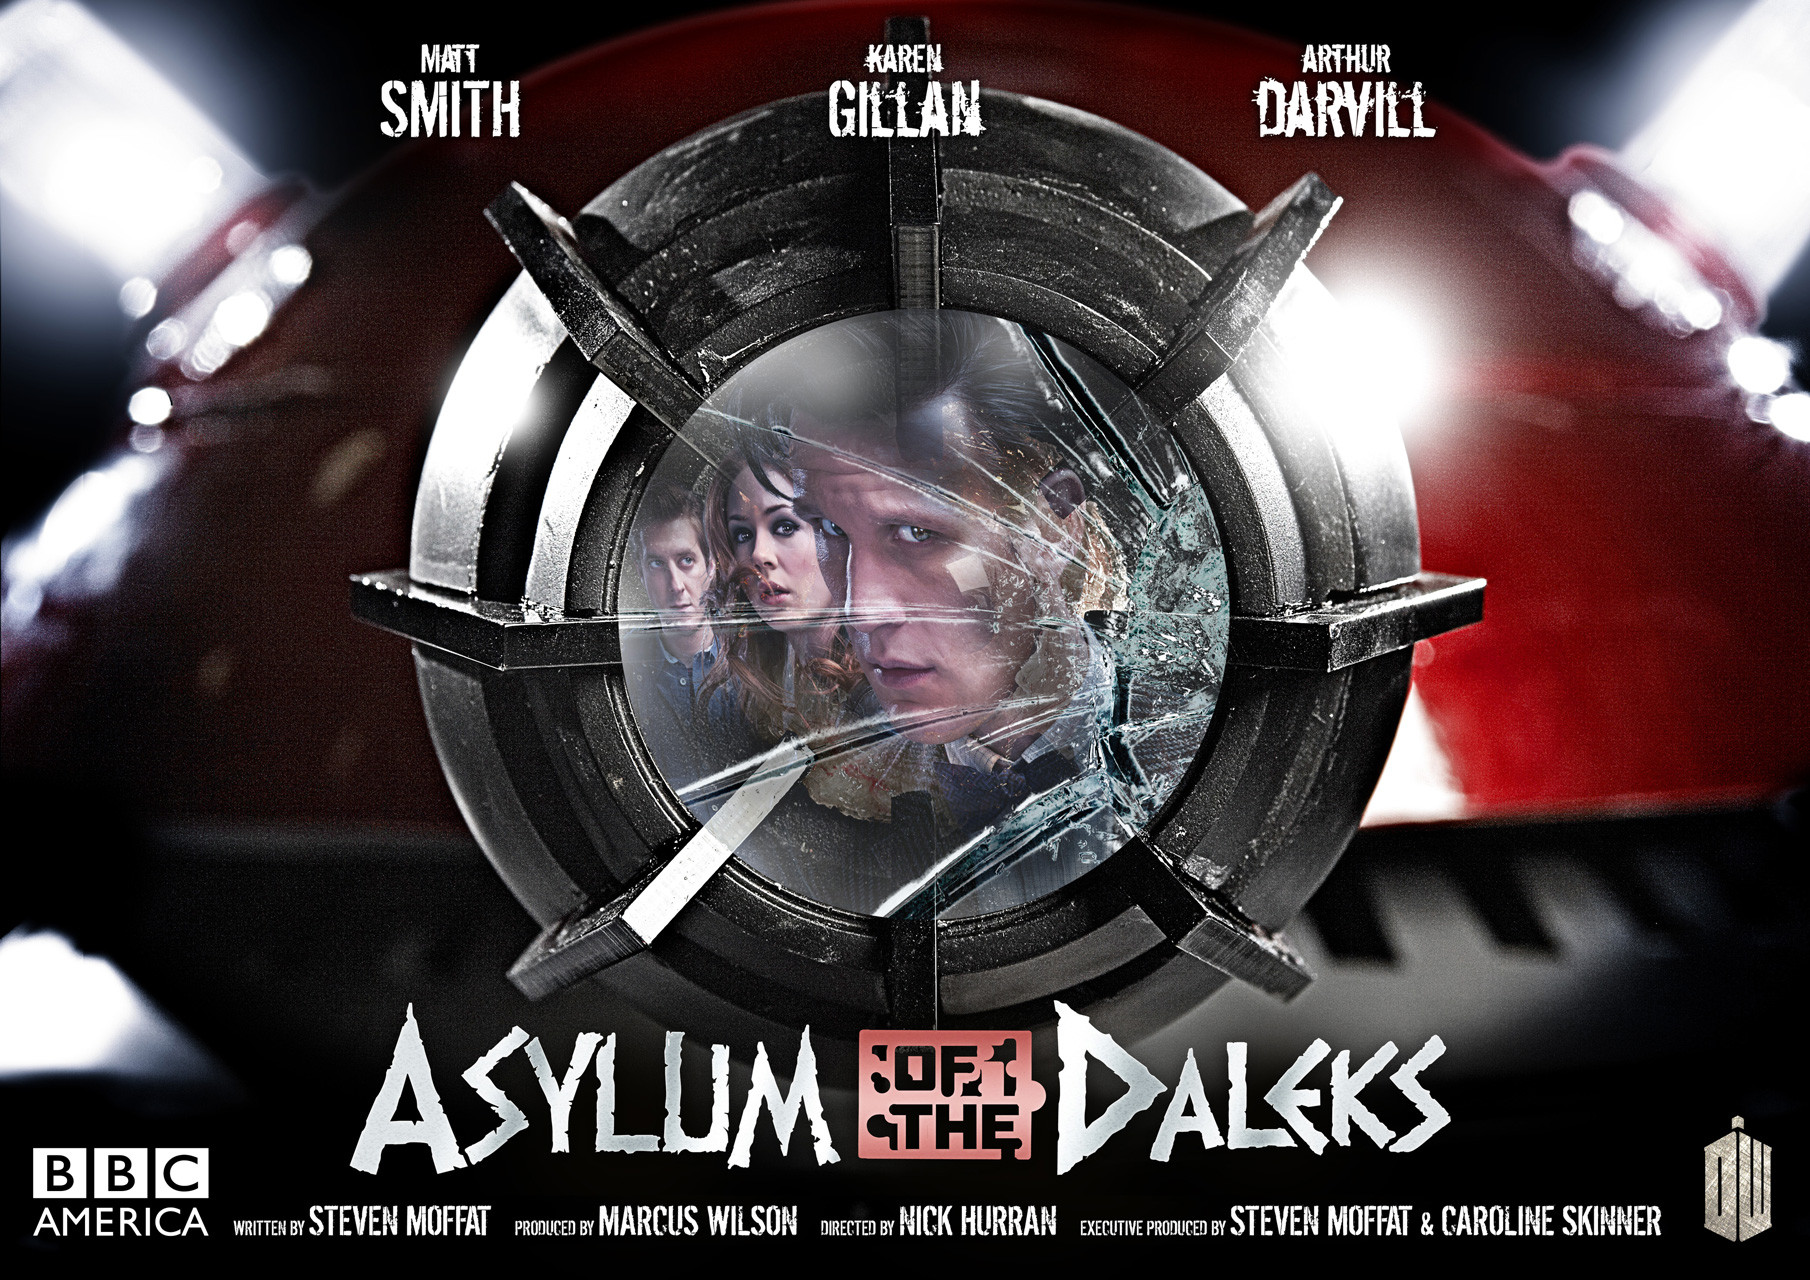 http://images5.fanpop.com/image/photos/31800000/Asylum-of-the-Daleks-poster-doctor-who-31819810-1810-1280.jpg